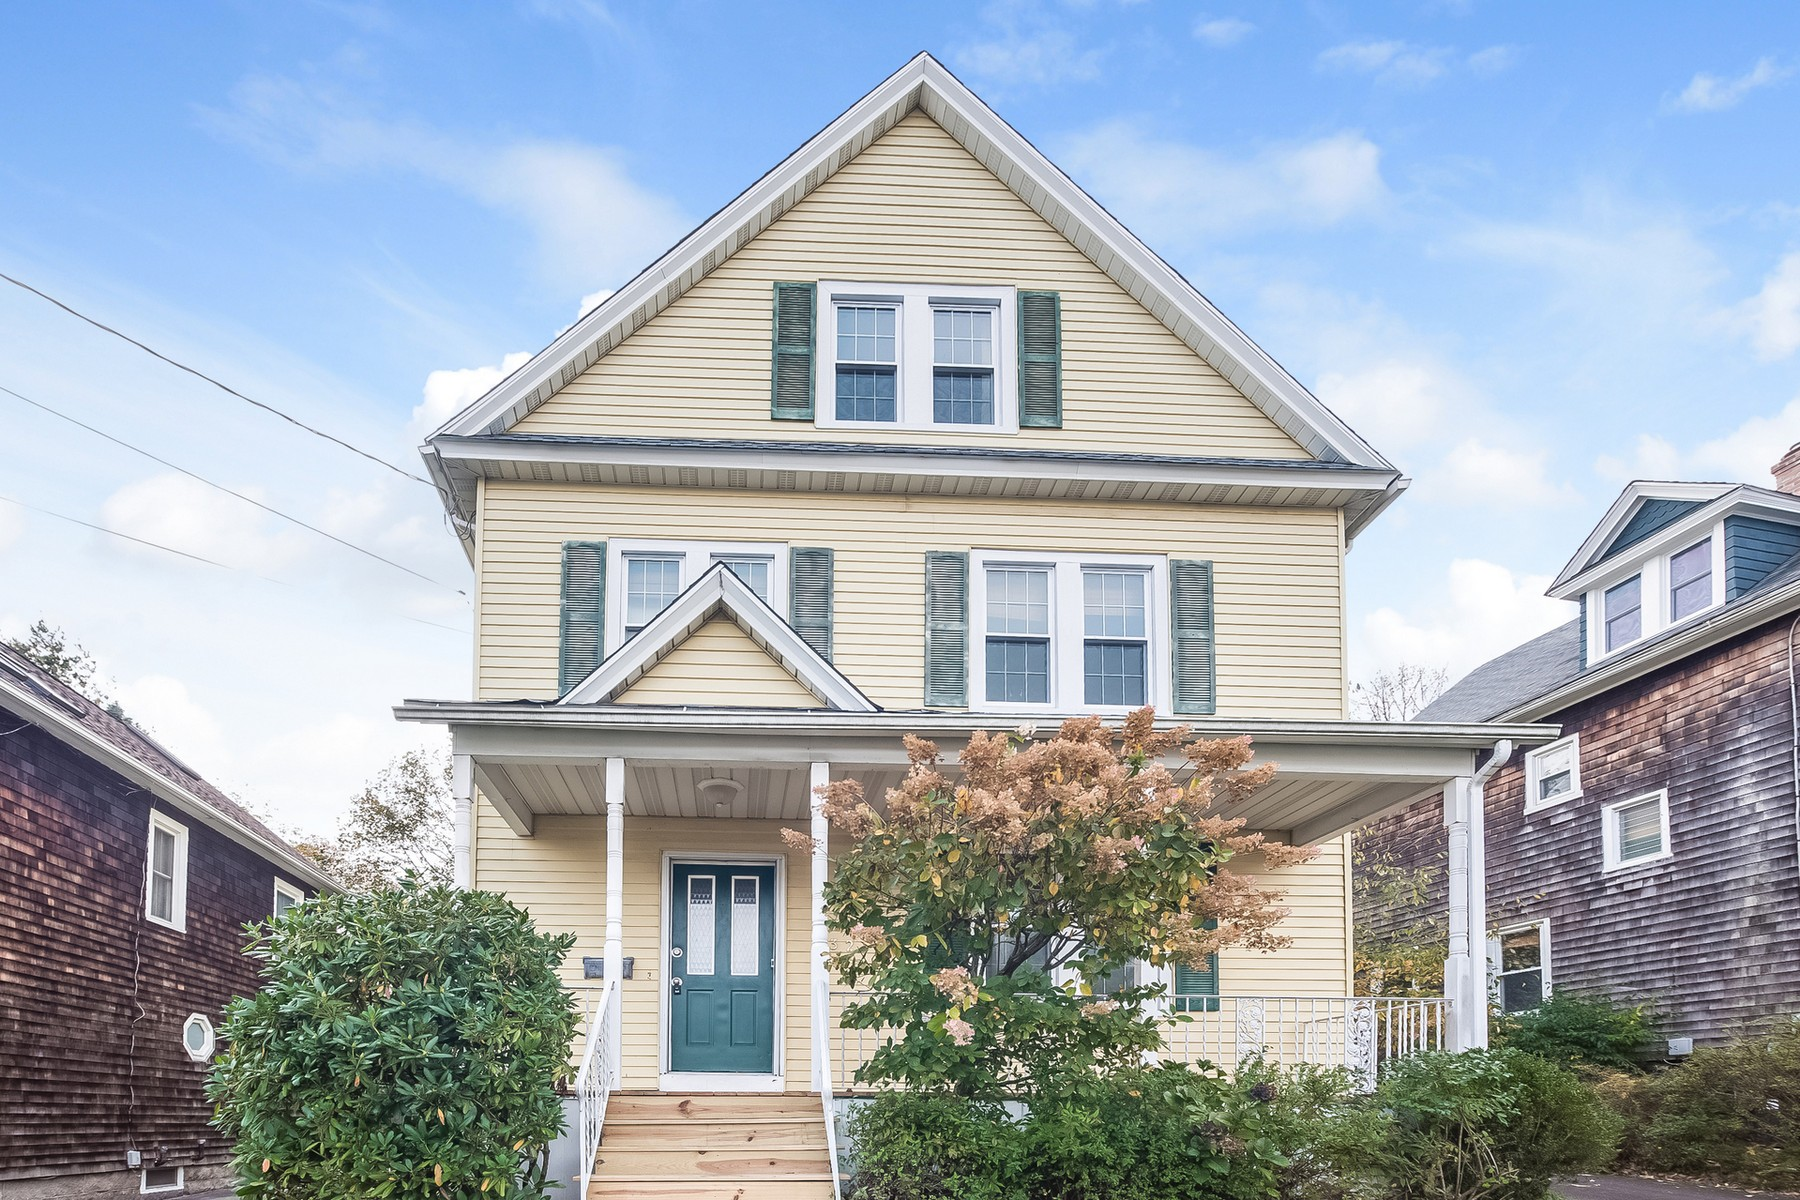 Single Family Home for Sale at One of a kind charm 32 Harris Road New London, Connecticut 06320 United States